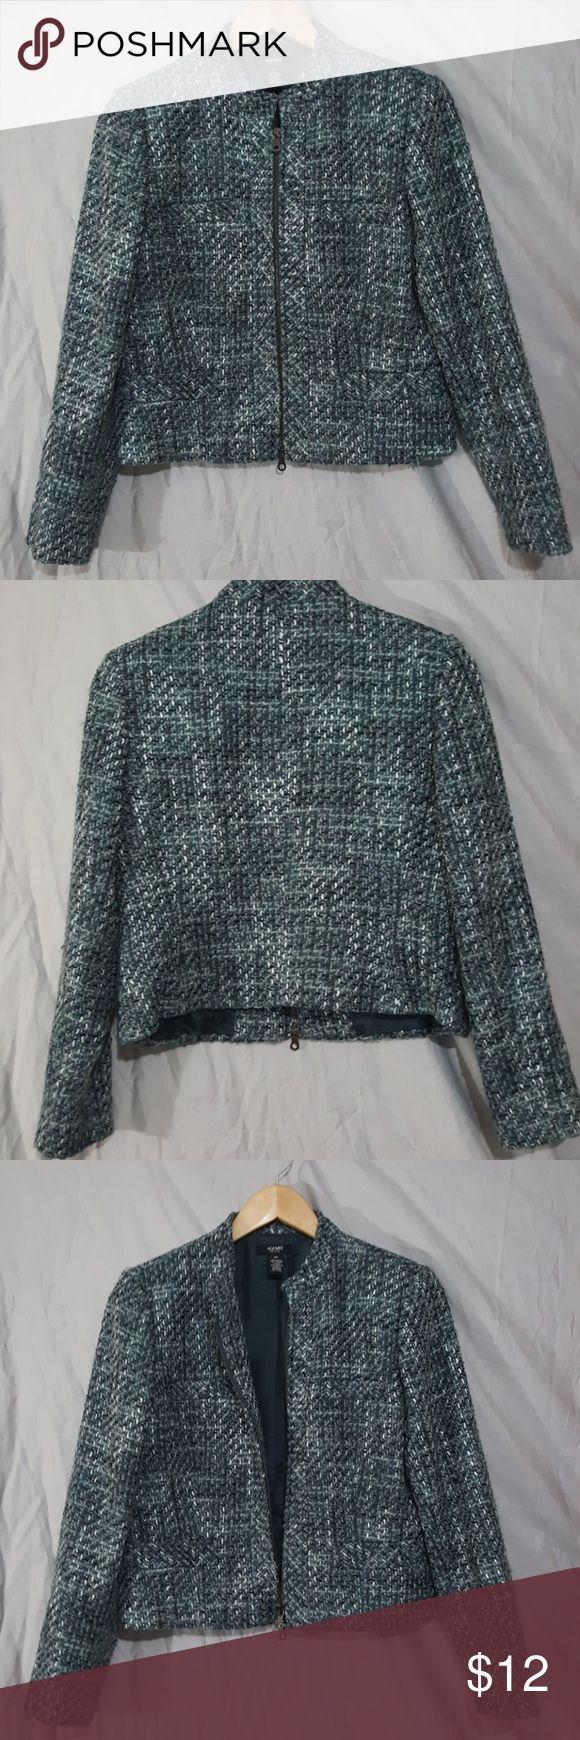 Alfani Tweed teal zip up blazer Size 8 Petite tweed blazer by Alfani. It is in good condition, zips up the front with faux front pockets. Alfani Jackets & Coats Blazers